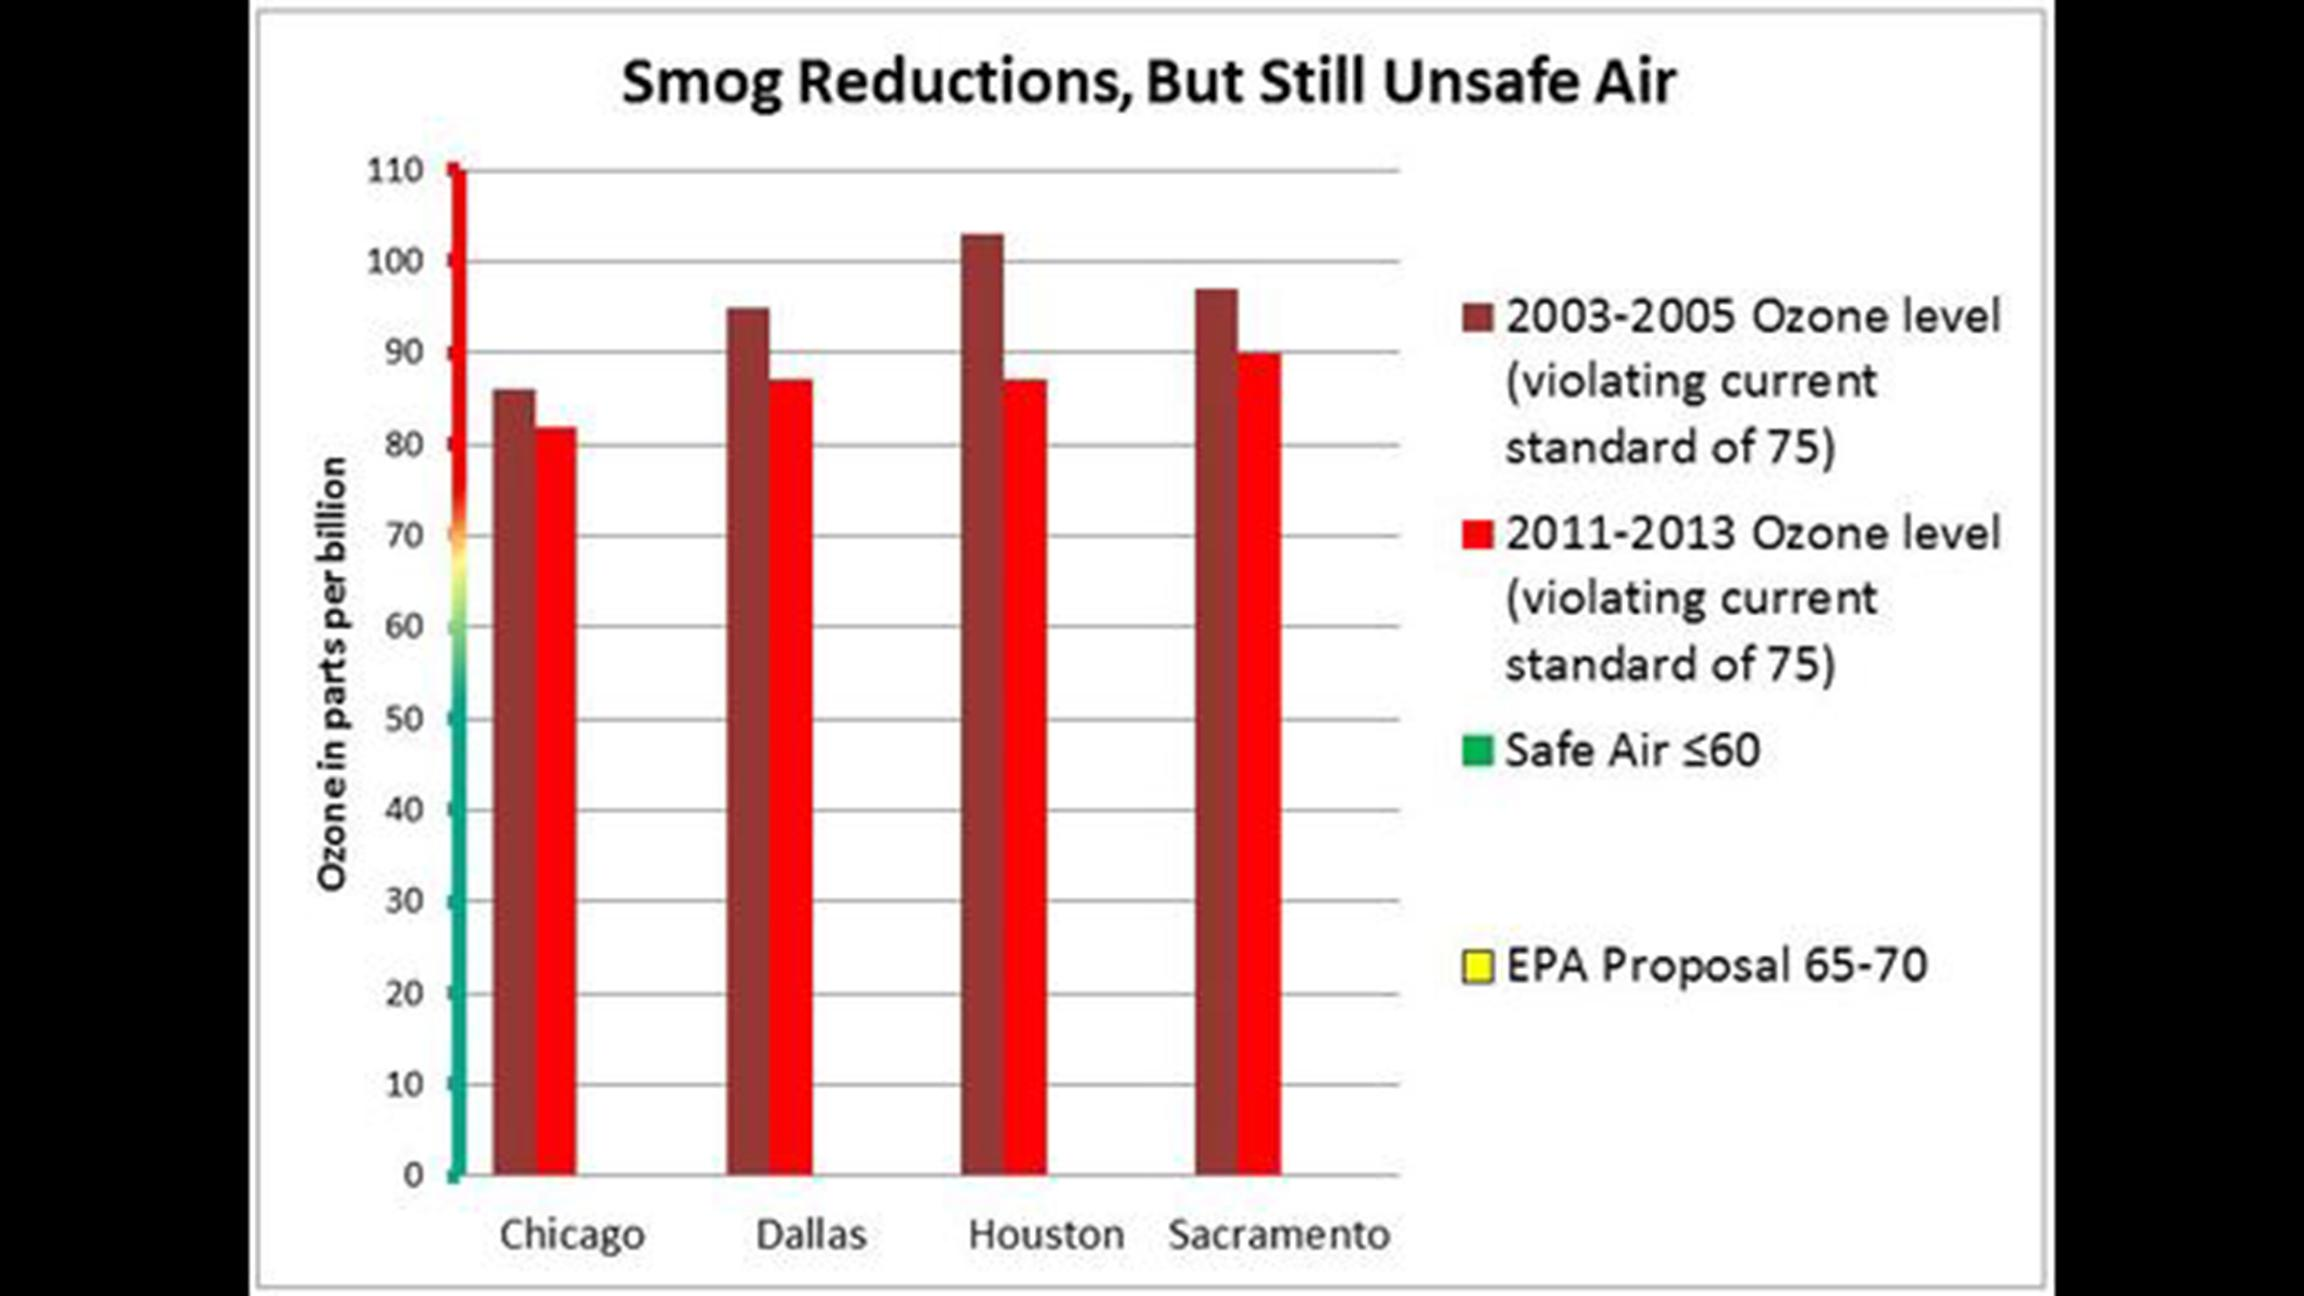 Data from 2003-05 and 2011-13 shows that several cities, including Chicago, would be in violation of new ozone standards announced by the EPA in 2015. (Natural Resources Defense Council)